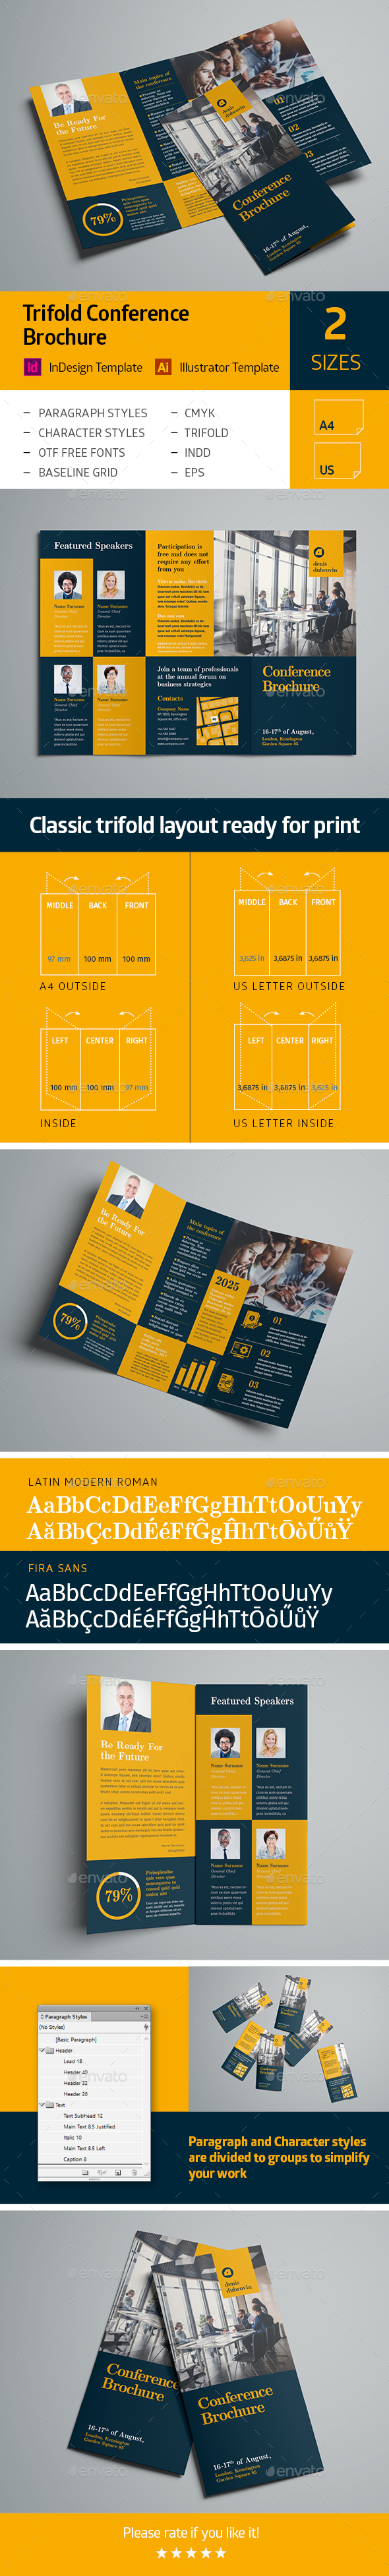 GraphicRiver Trifold Conference Brochure 21123300